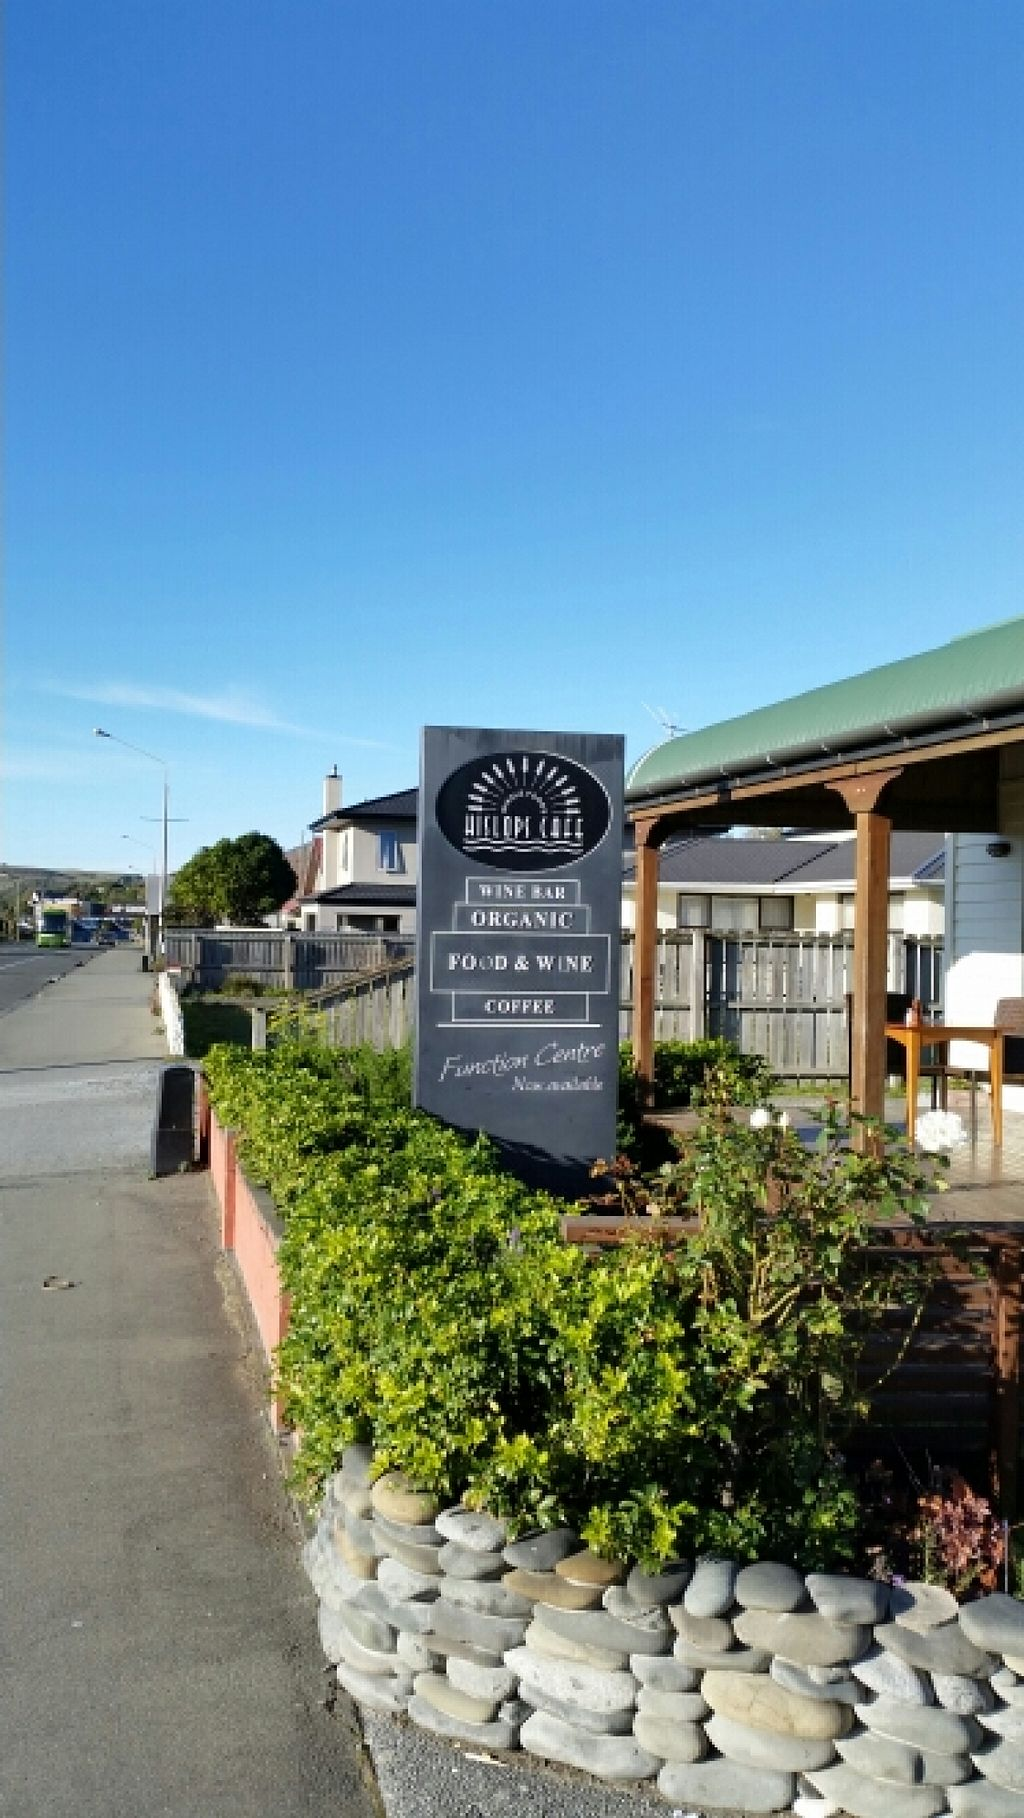 """Photo of Hislop's Cafe  by <a href=""""/members/profile/AndyTheVWDude"""">AndyTheVWDude</a> <br/>Hislops Cafe Kaikoura <br/> April 19, 2016  - <a href='/contact/abuse/image/6890/145372'>Report</a>"""